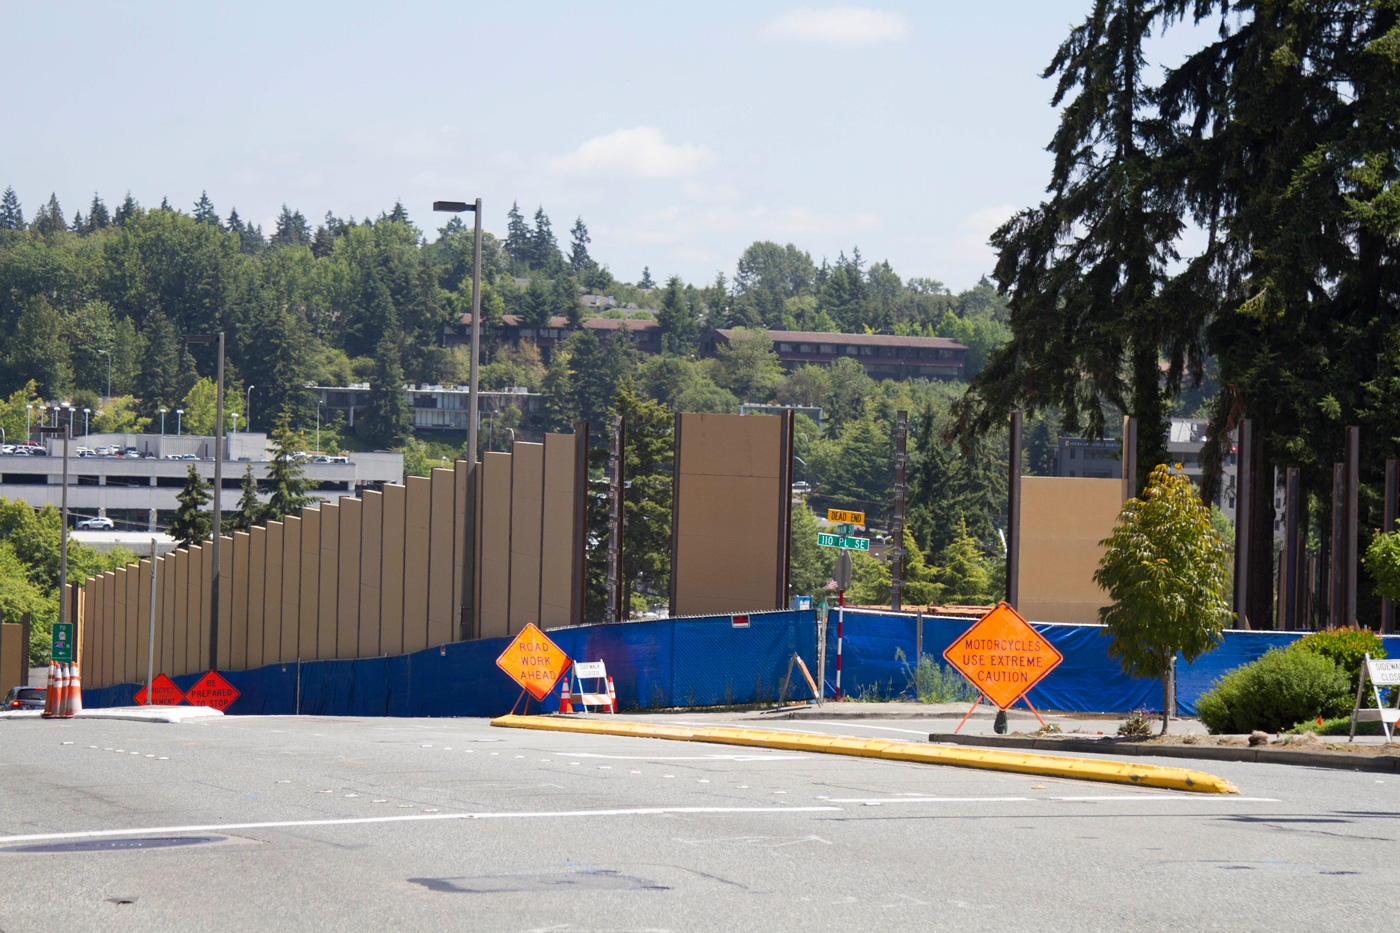 Construction of the temporary sound wall around the south tunnel portal site at Main Street and 112th Avenue NE.